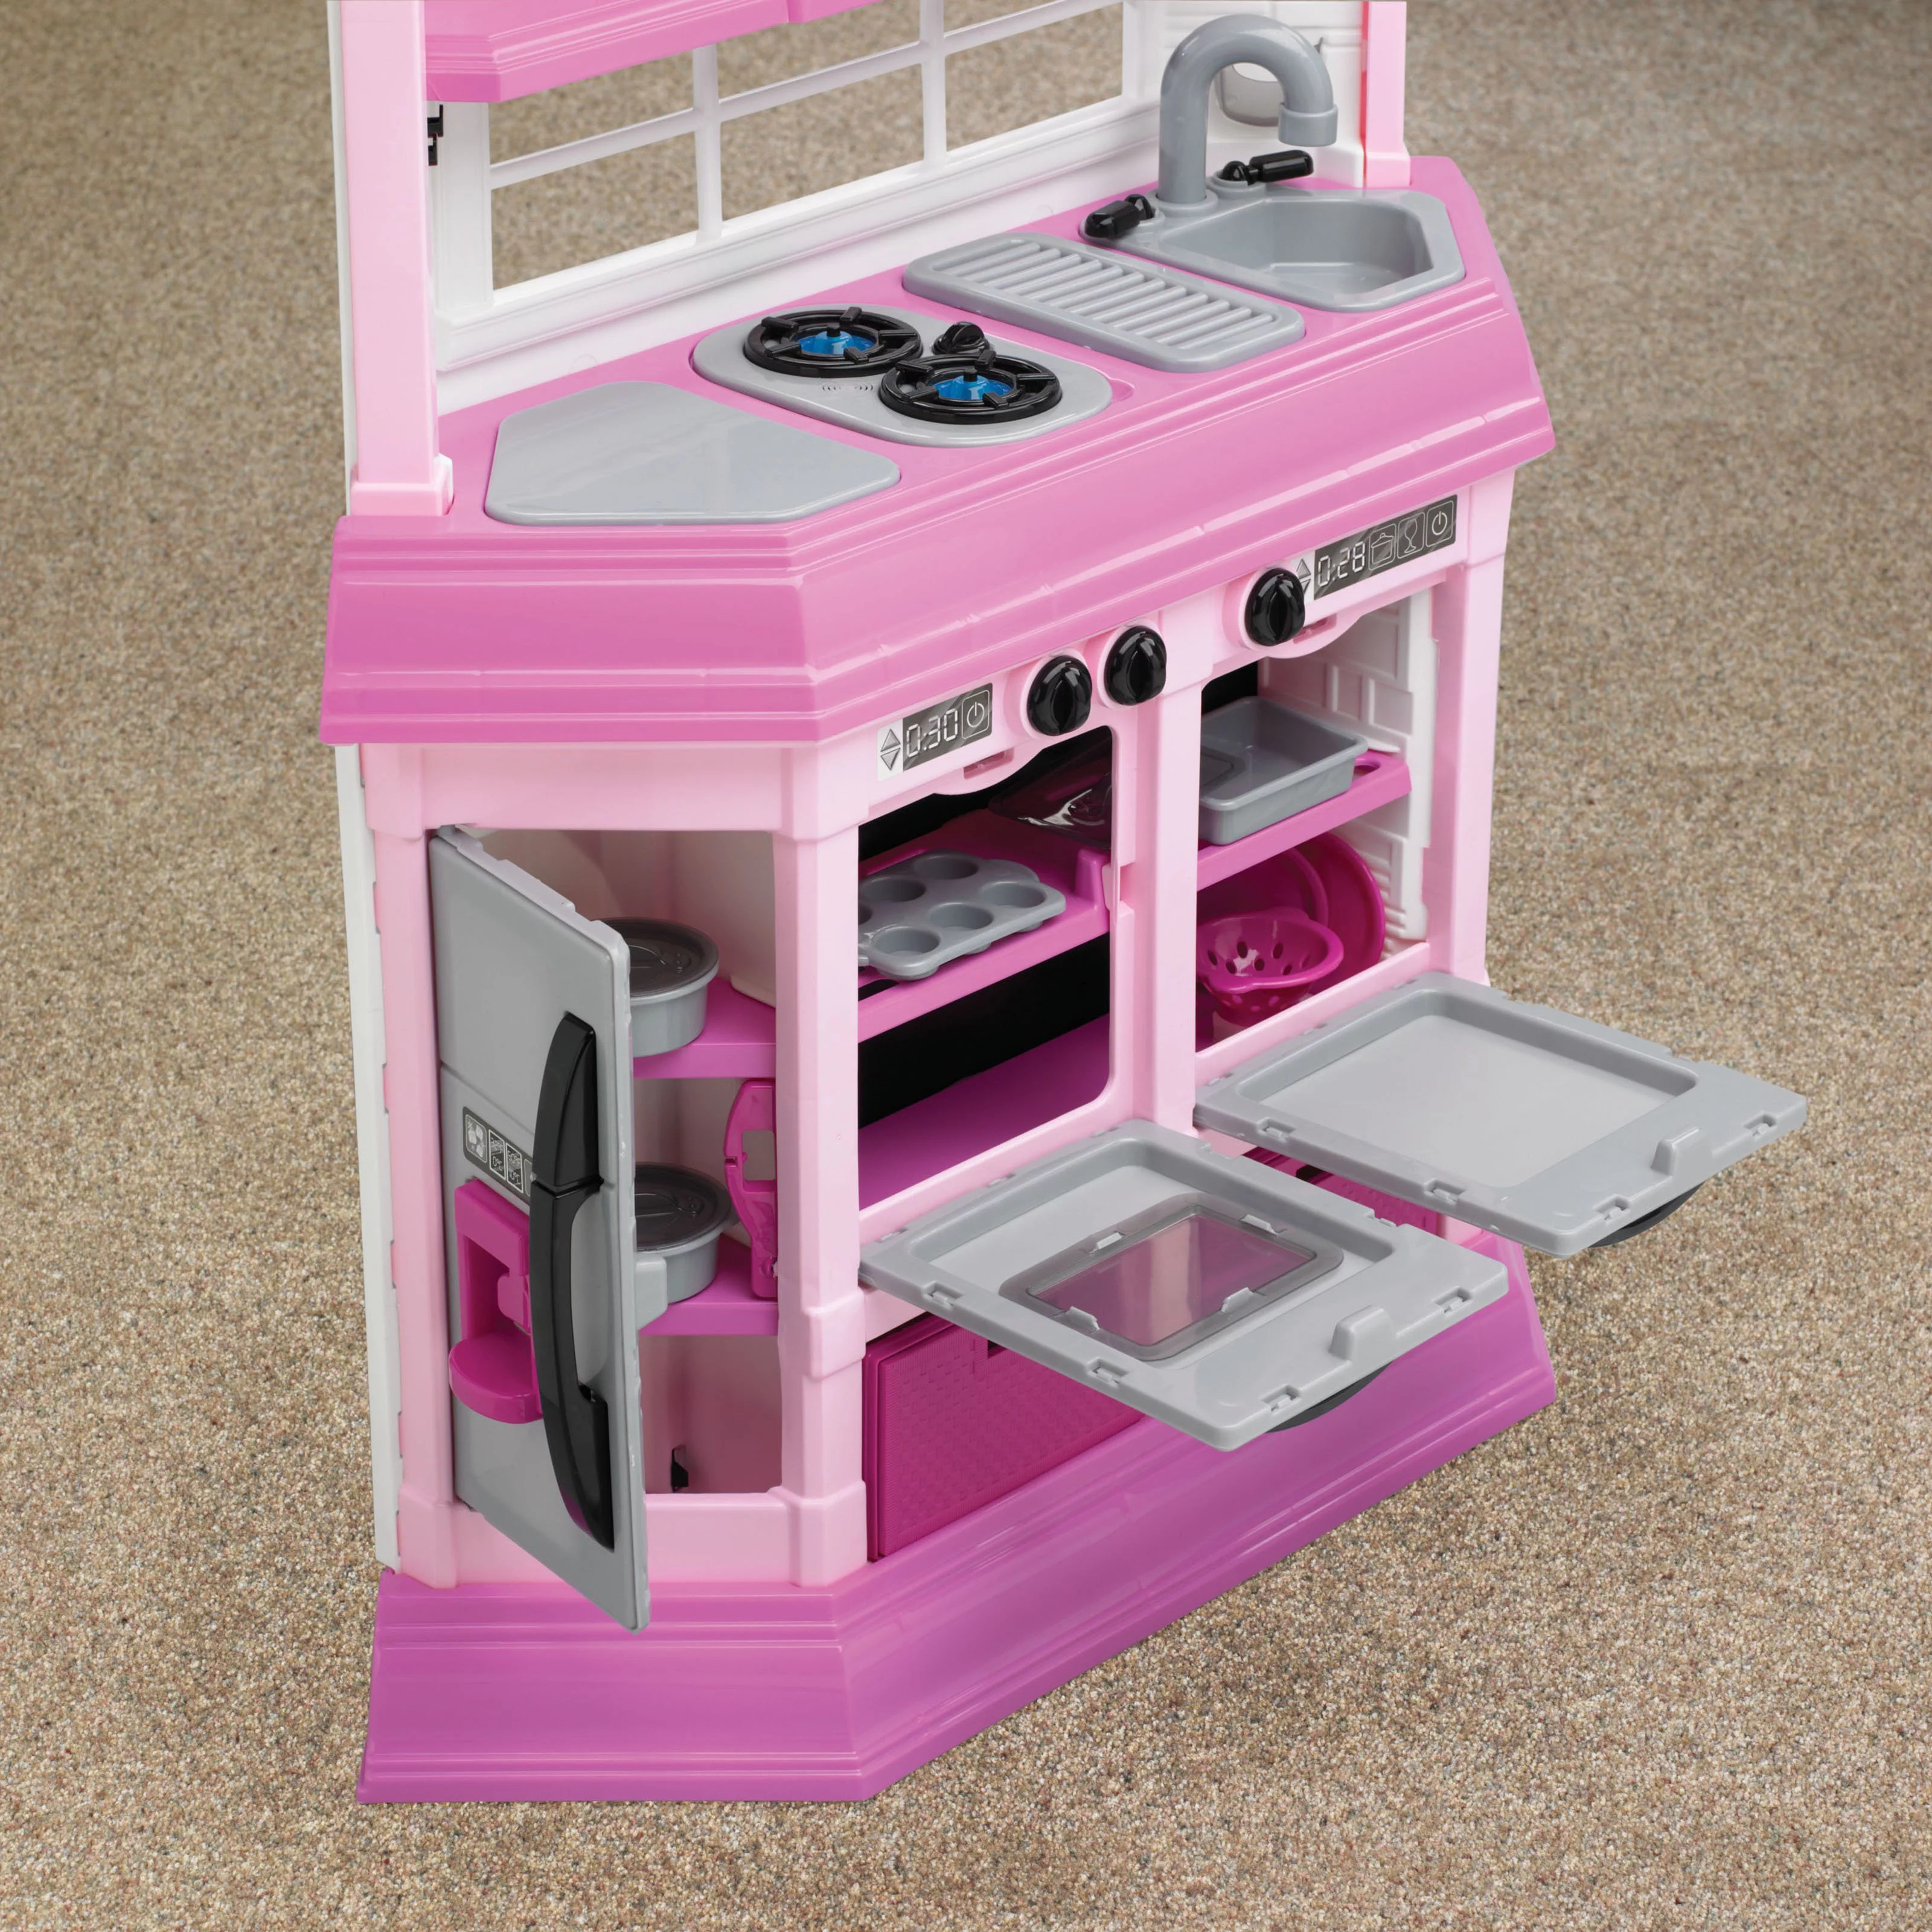 kitchen set for girl buy old cabinets pretend play kids cooking bake food toy